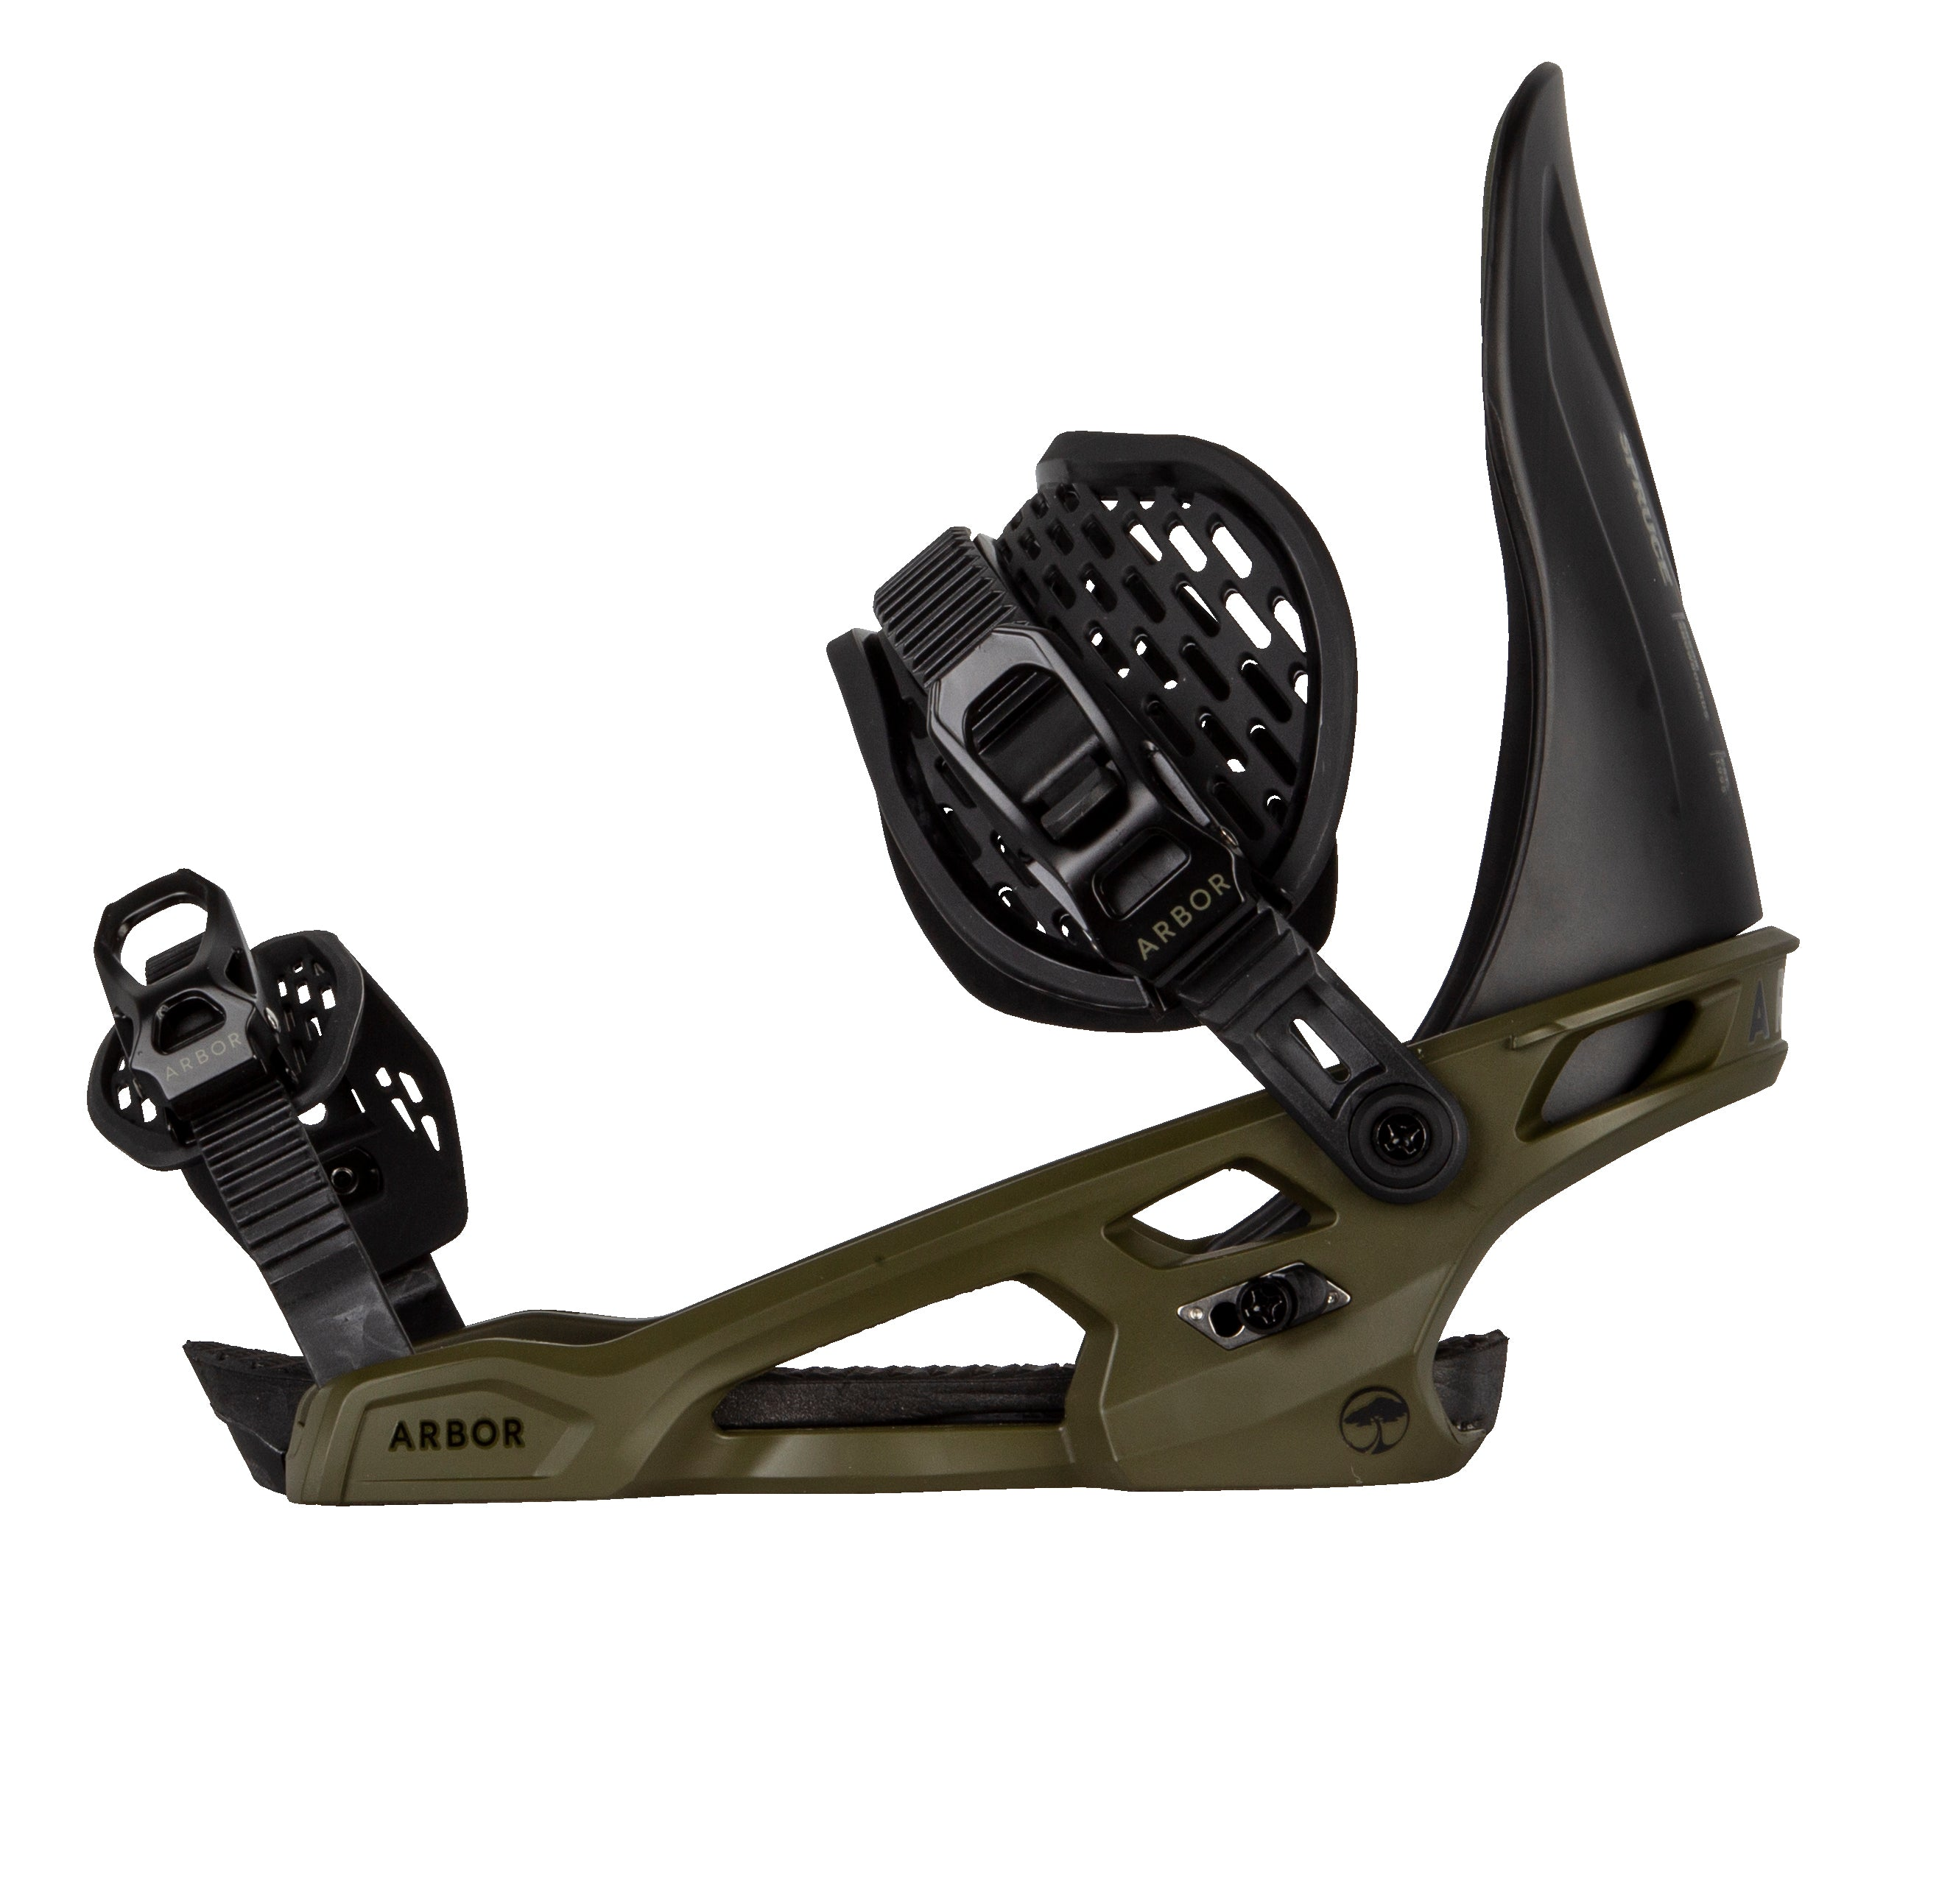 Arbor Spruce Bindings - 88 Gear